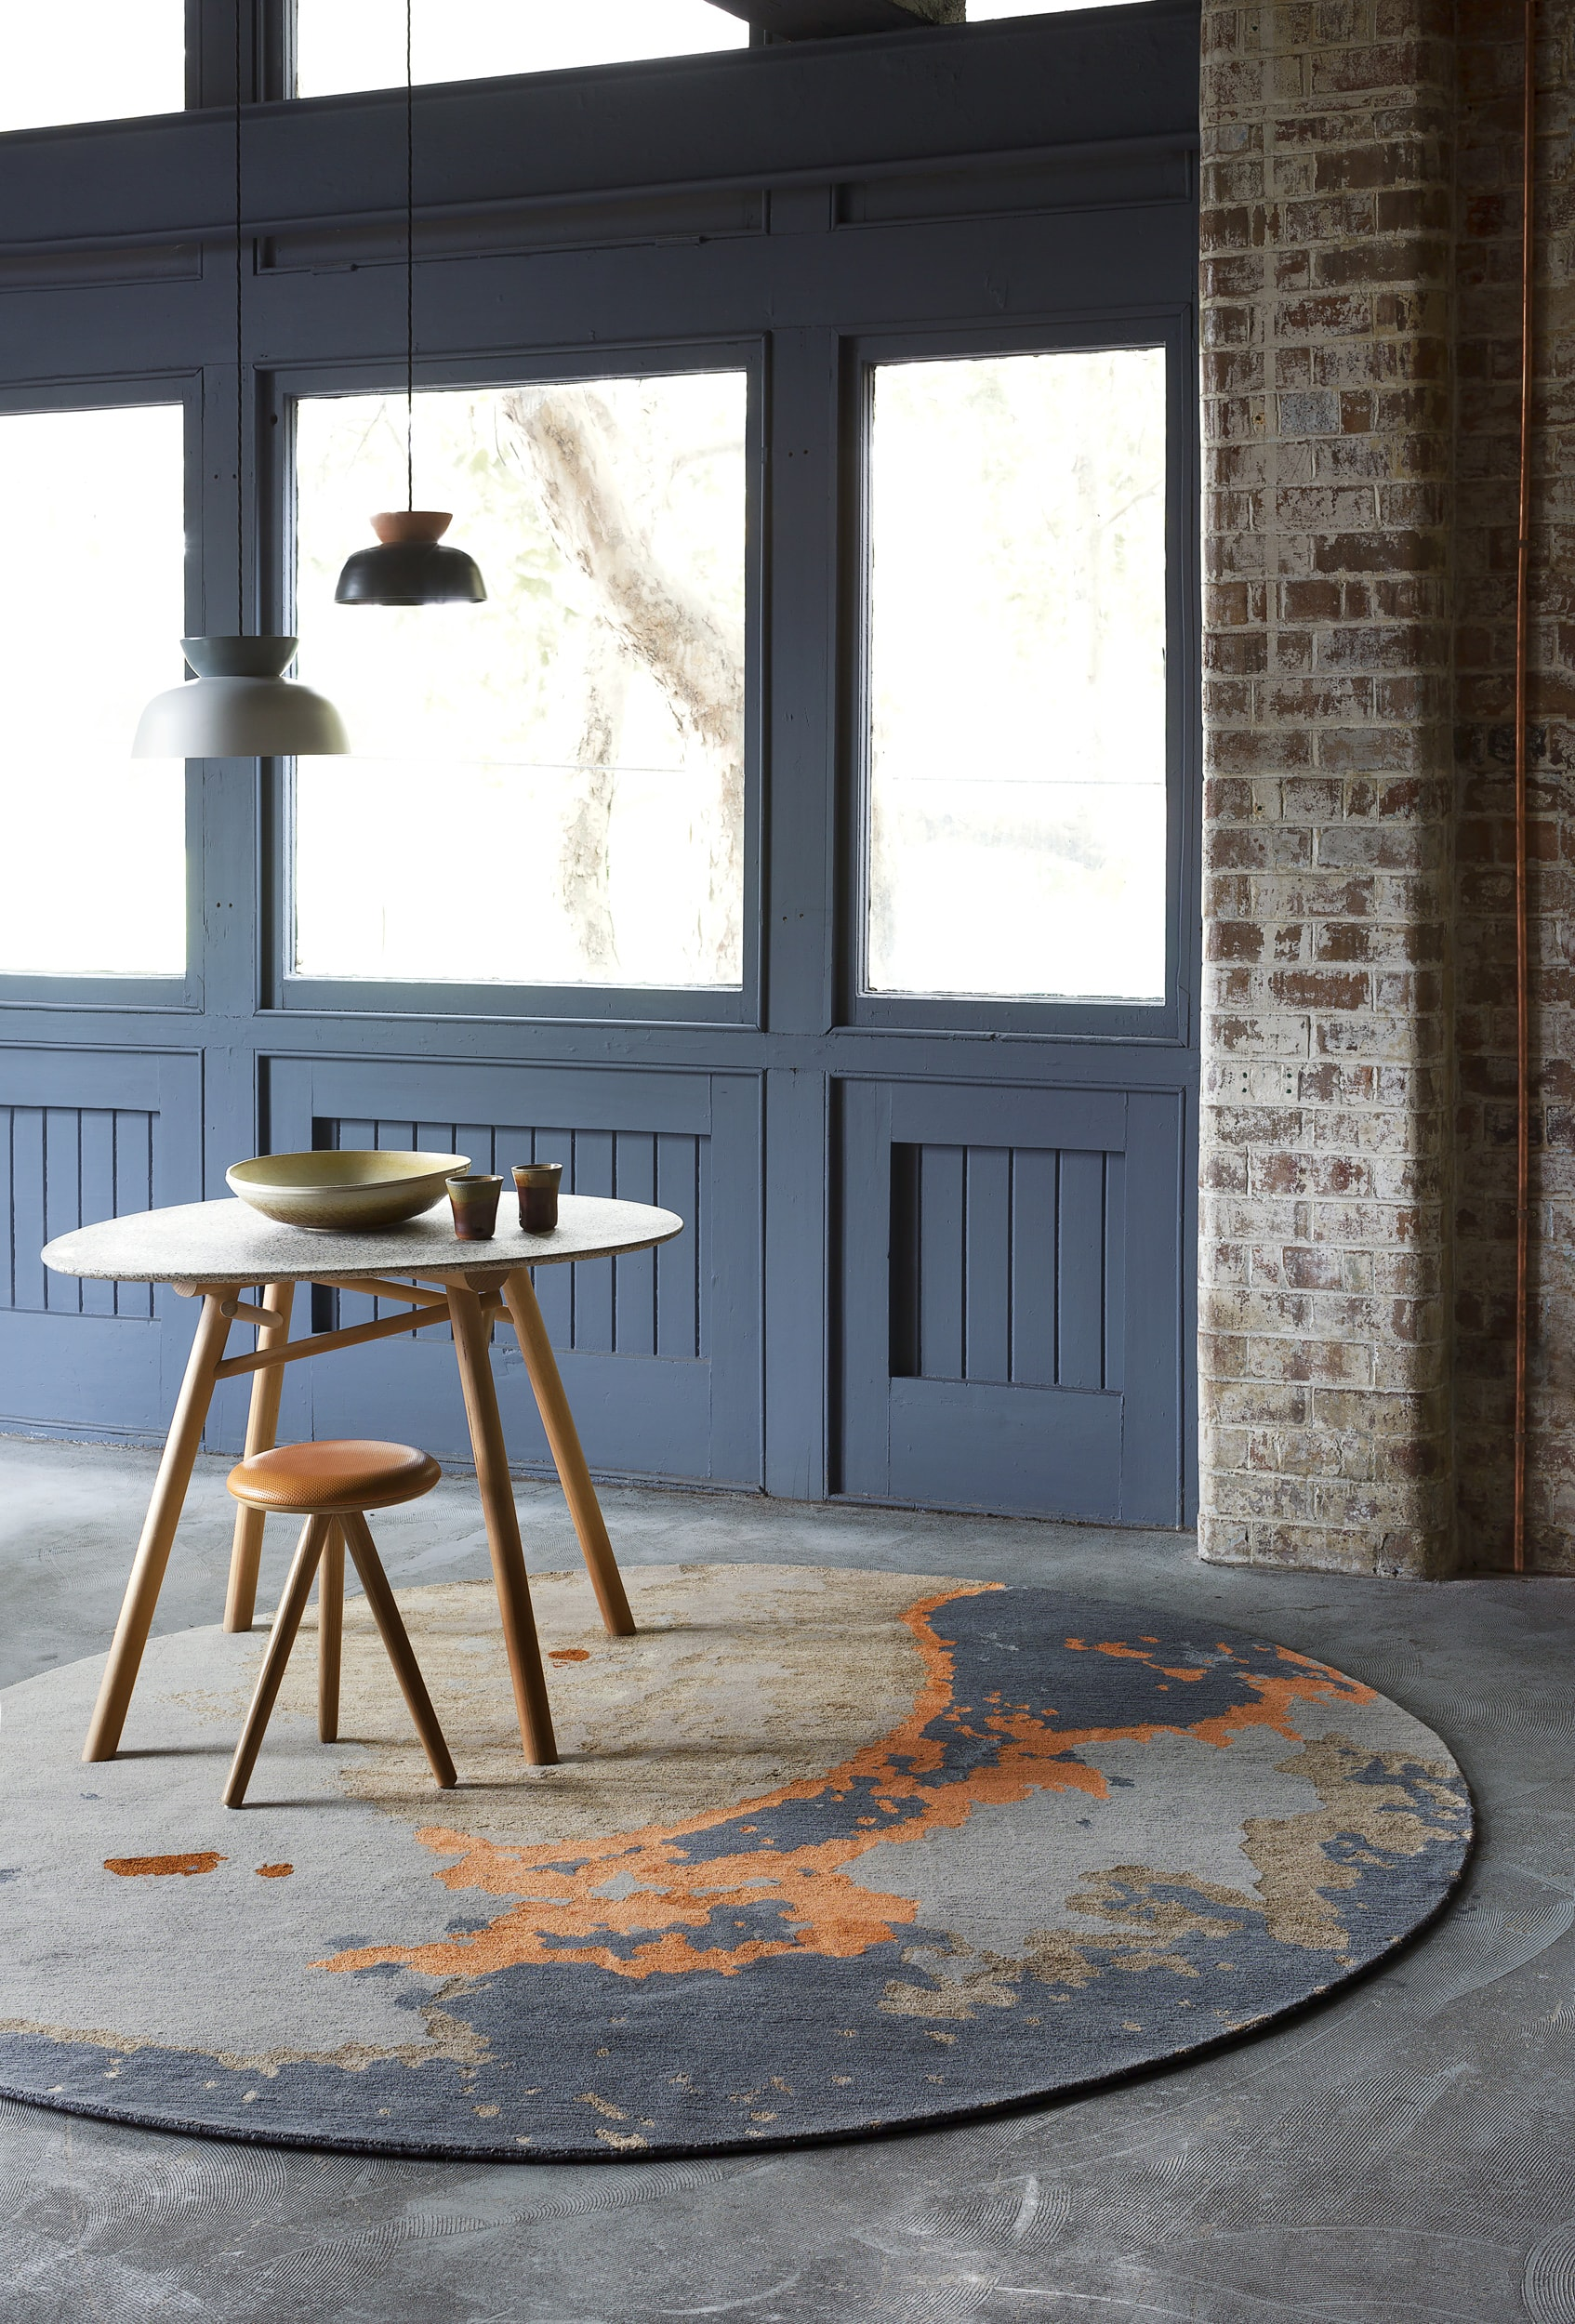 Designer Rugs Launch New Collection In Collaboration With Hare And Klein Collection Feature Australiaaceto Edit 2 Min